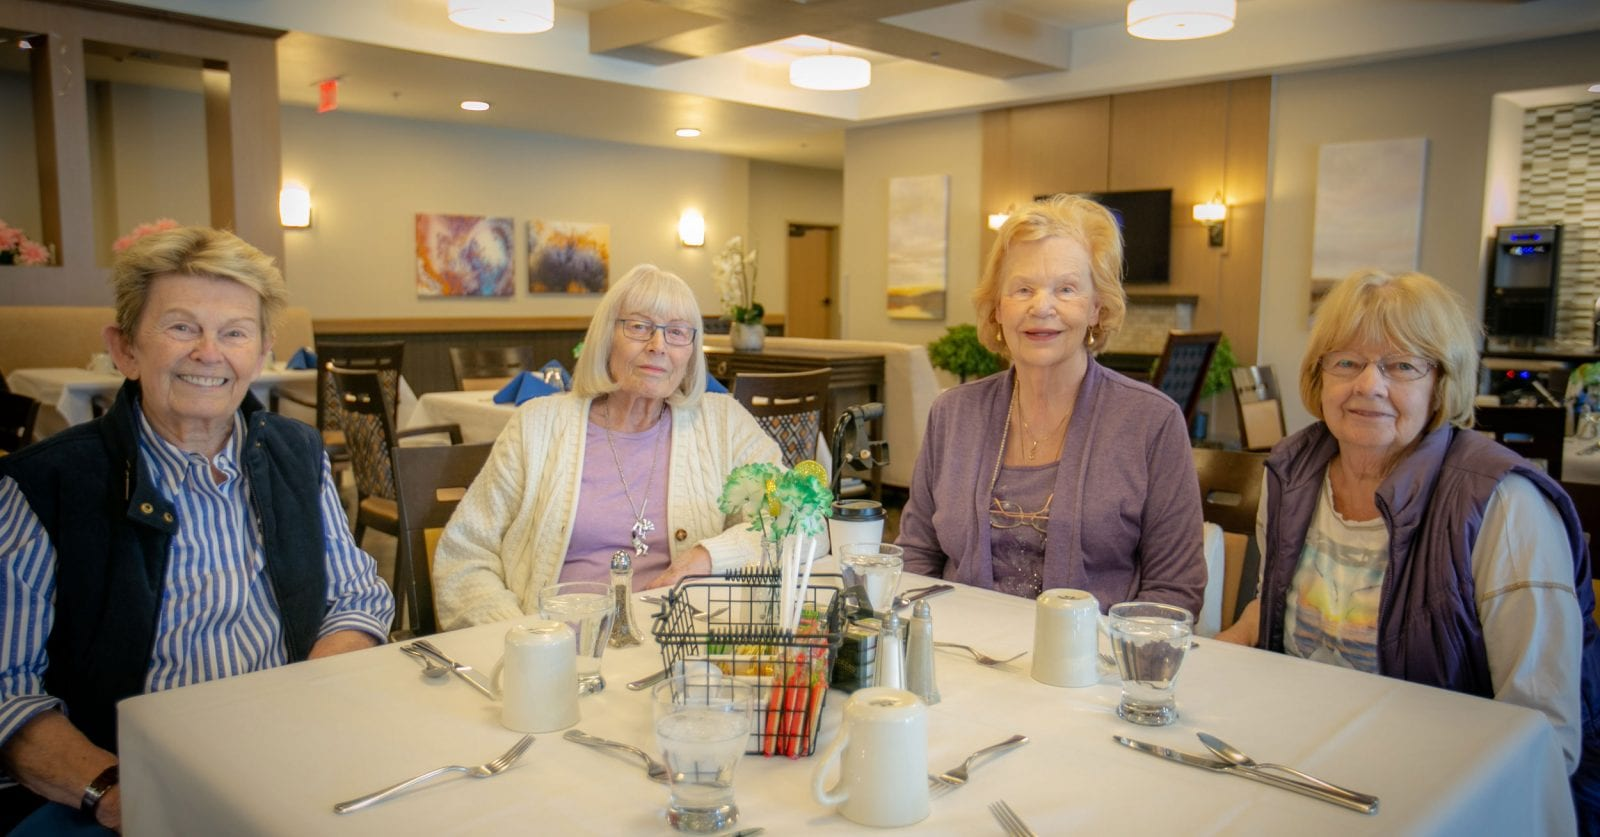 Veranda Senior Living has superb dining